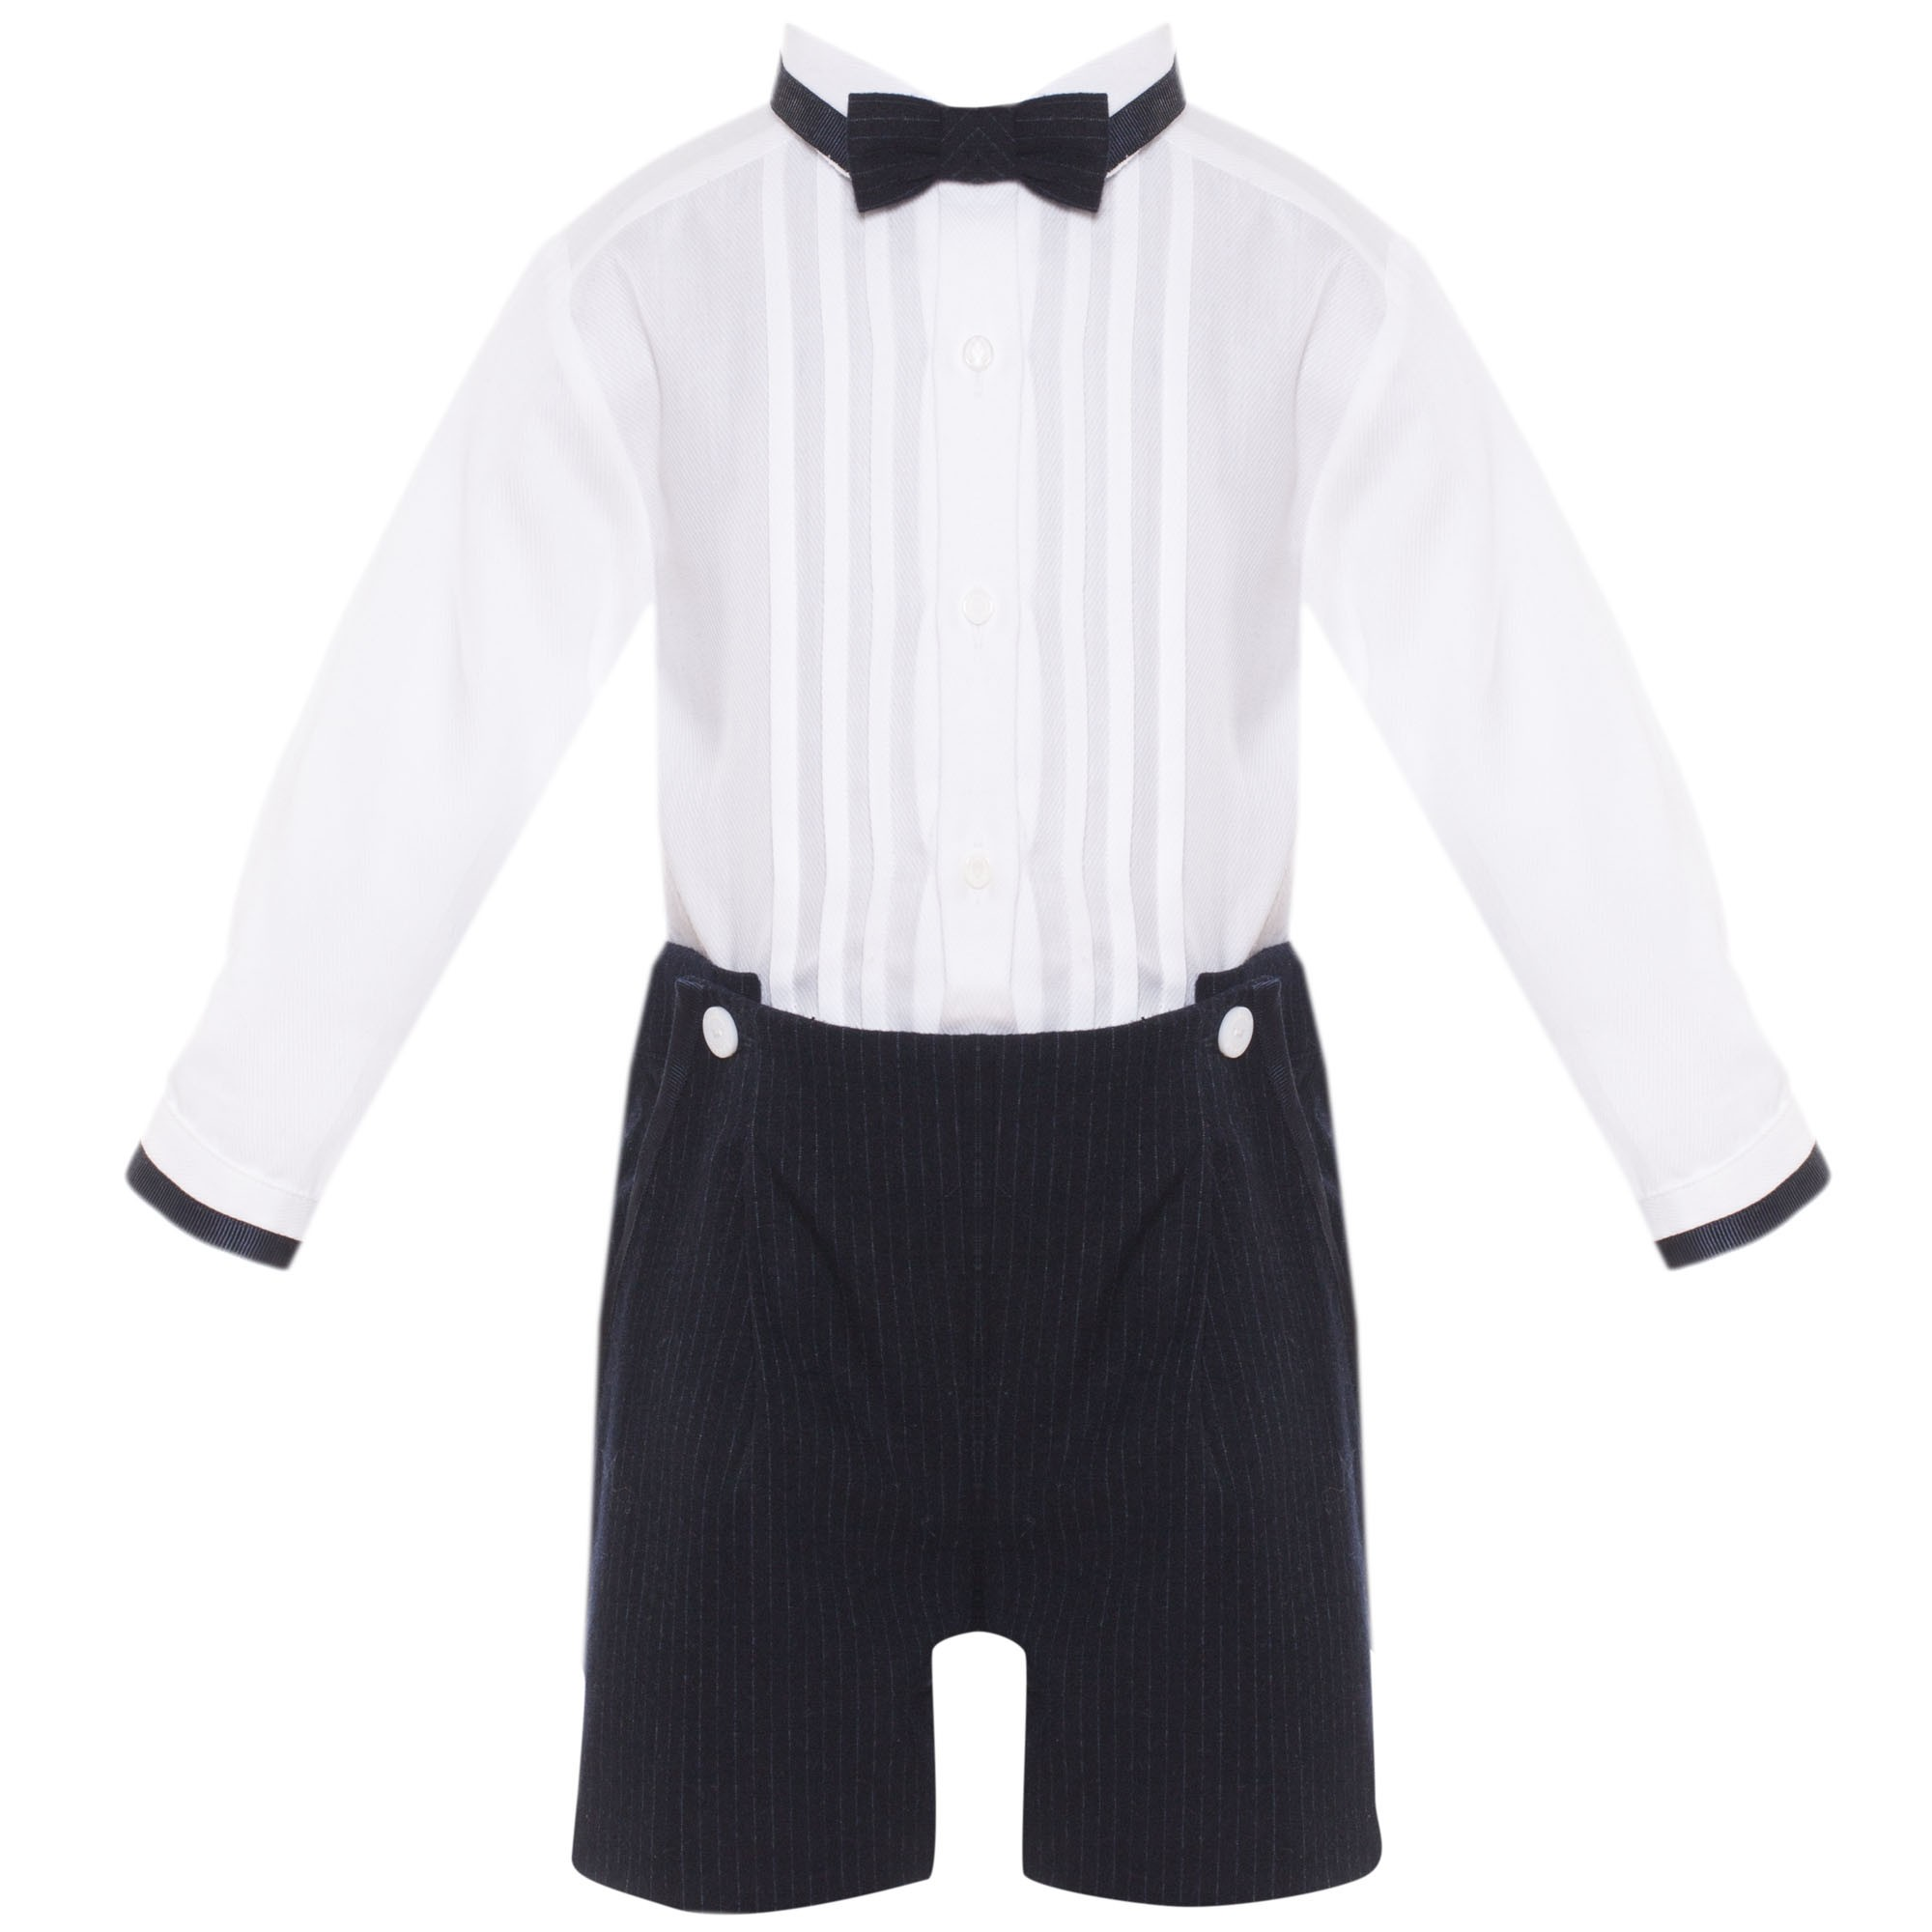 d68bbf958a70e PATACHOU BABY BOY WHITE & GREY STRIPED ROMPER WITH REMOVABLE BOW TIE ...